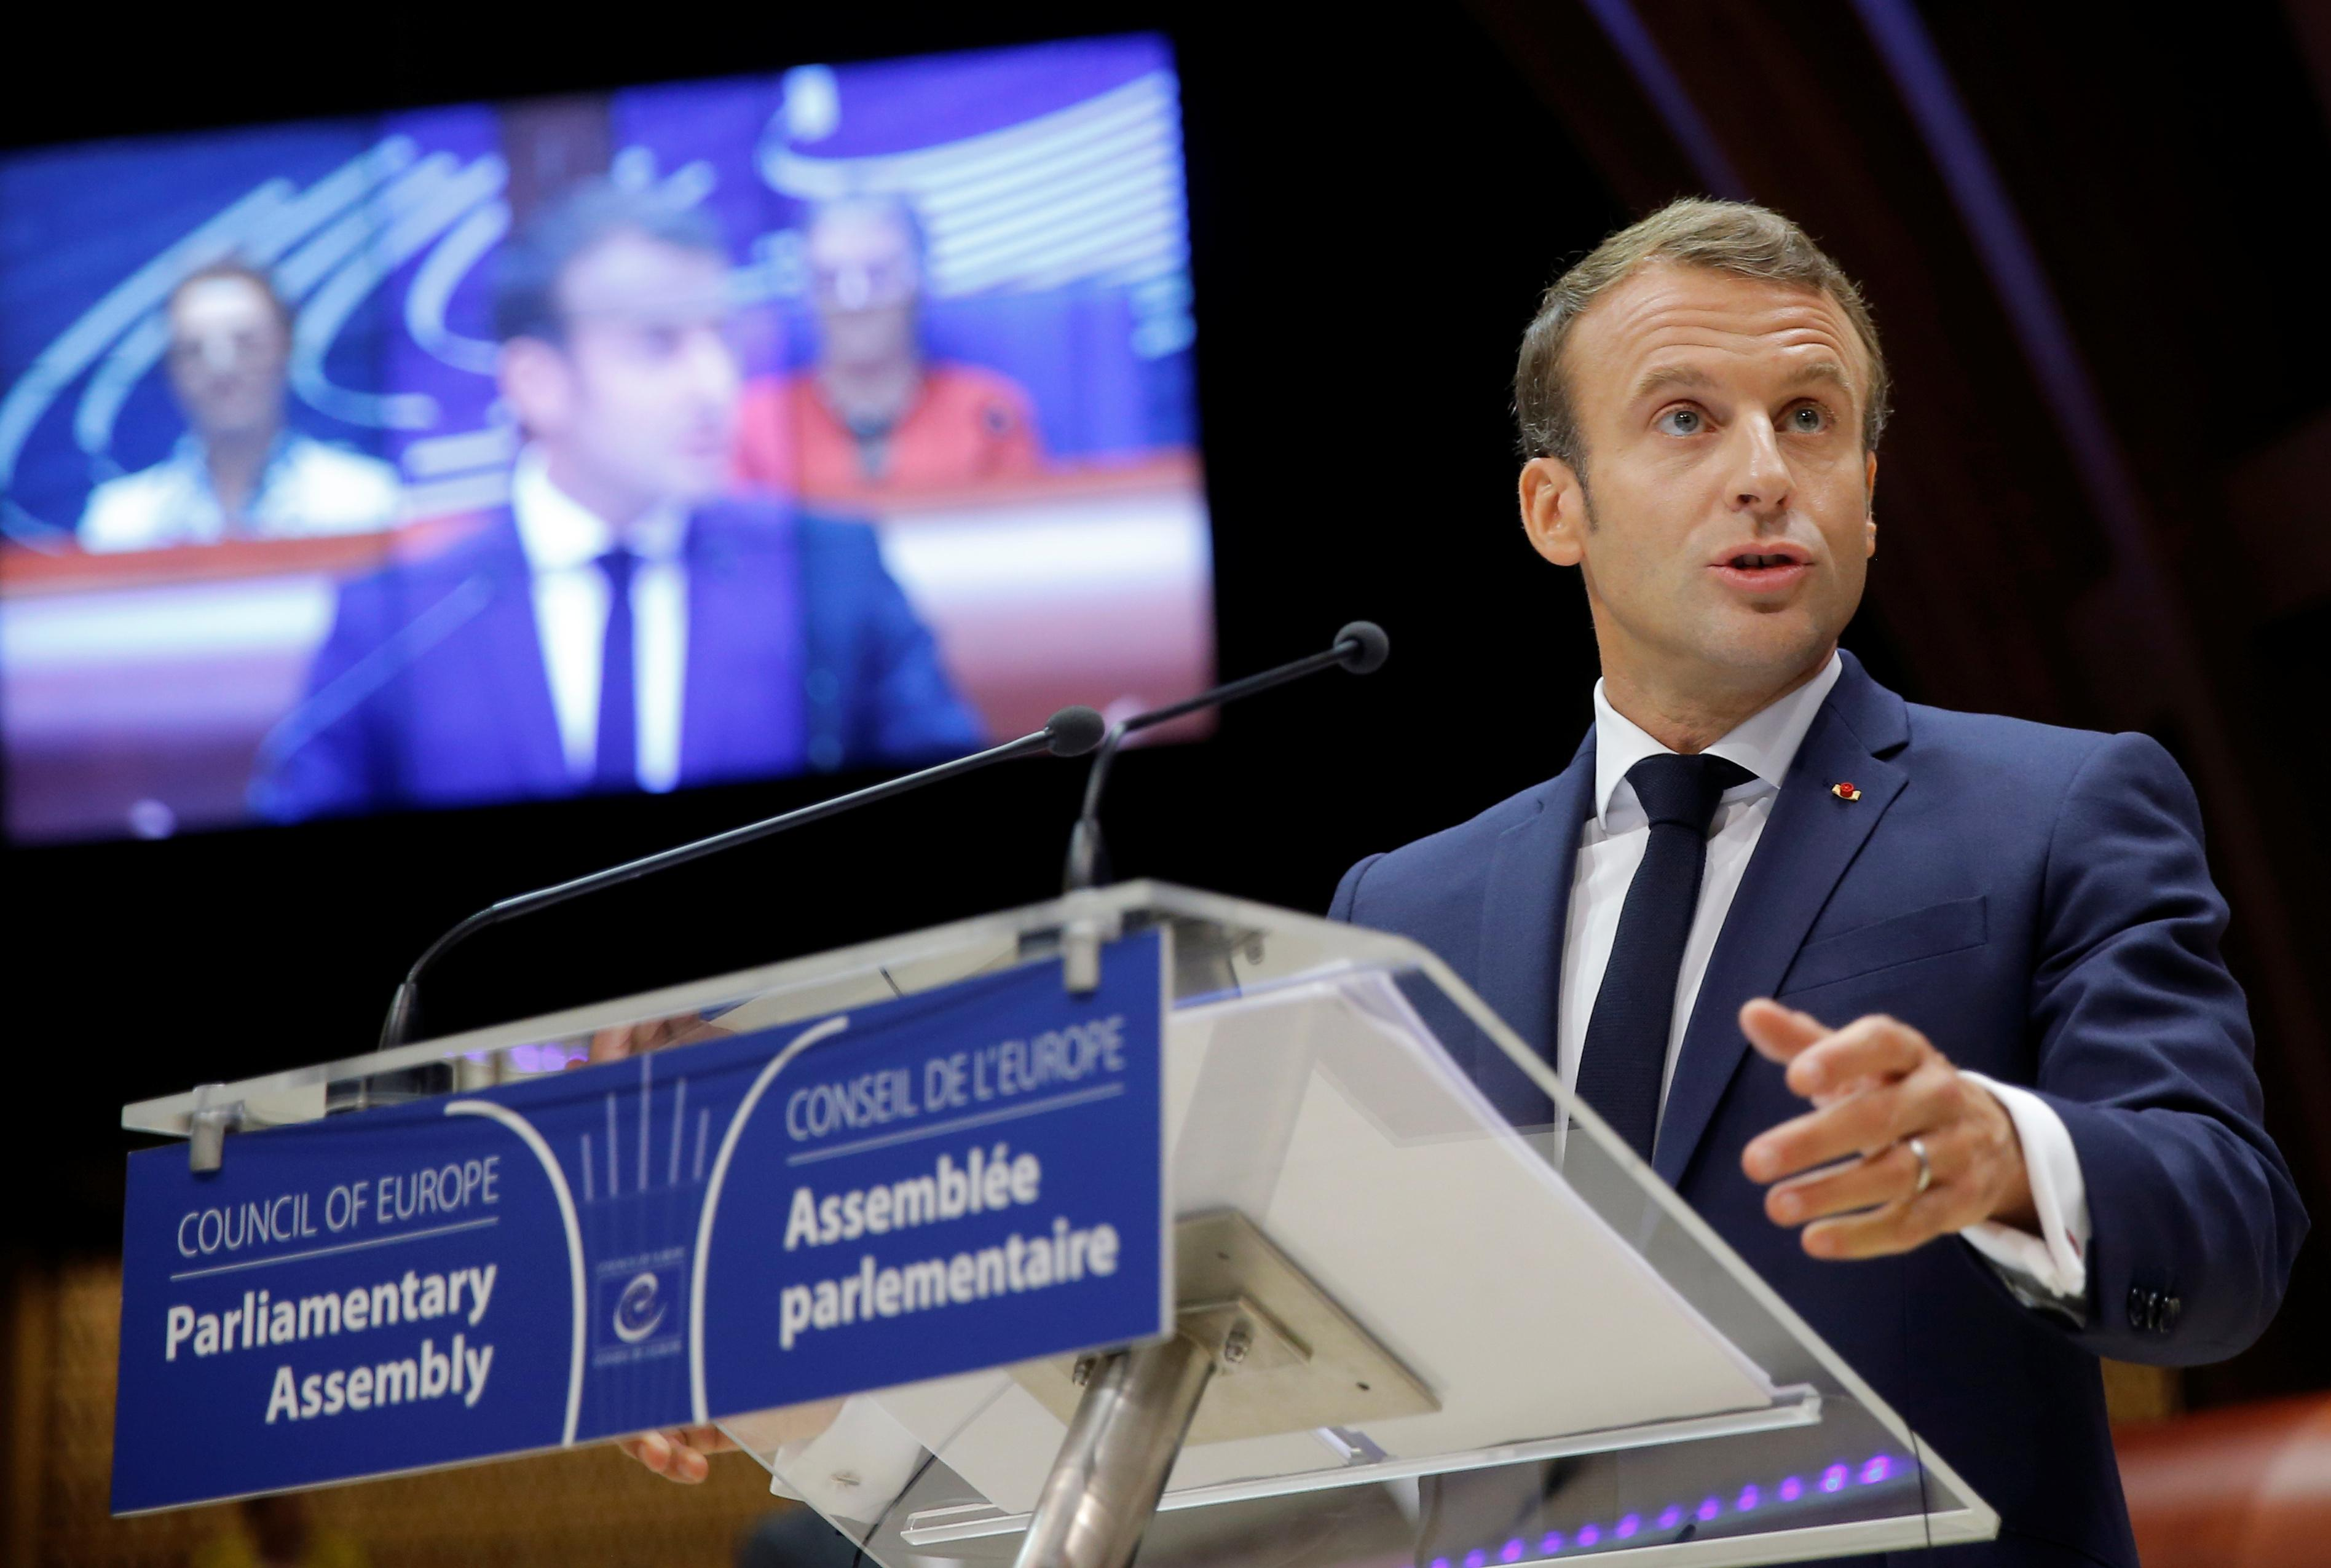 Macron's tax cuts for the wealthy not bearing fruit - yet: study